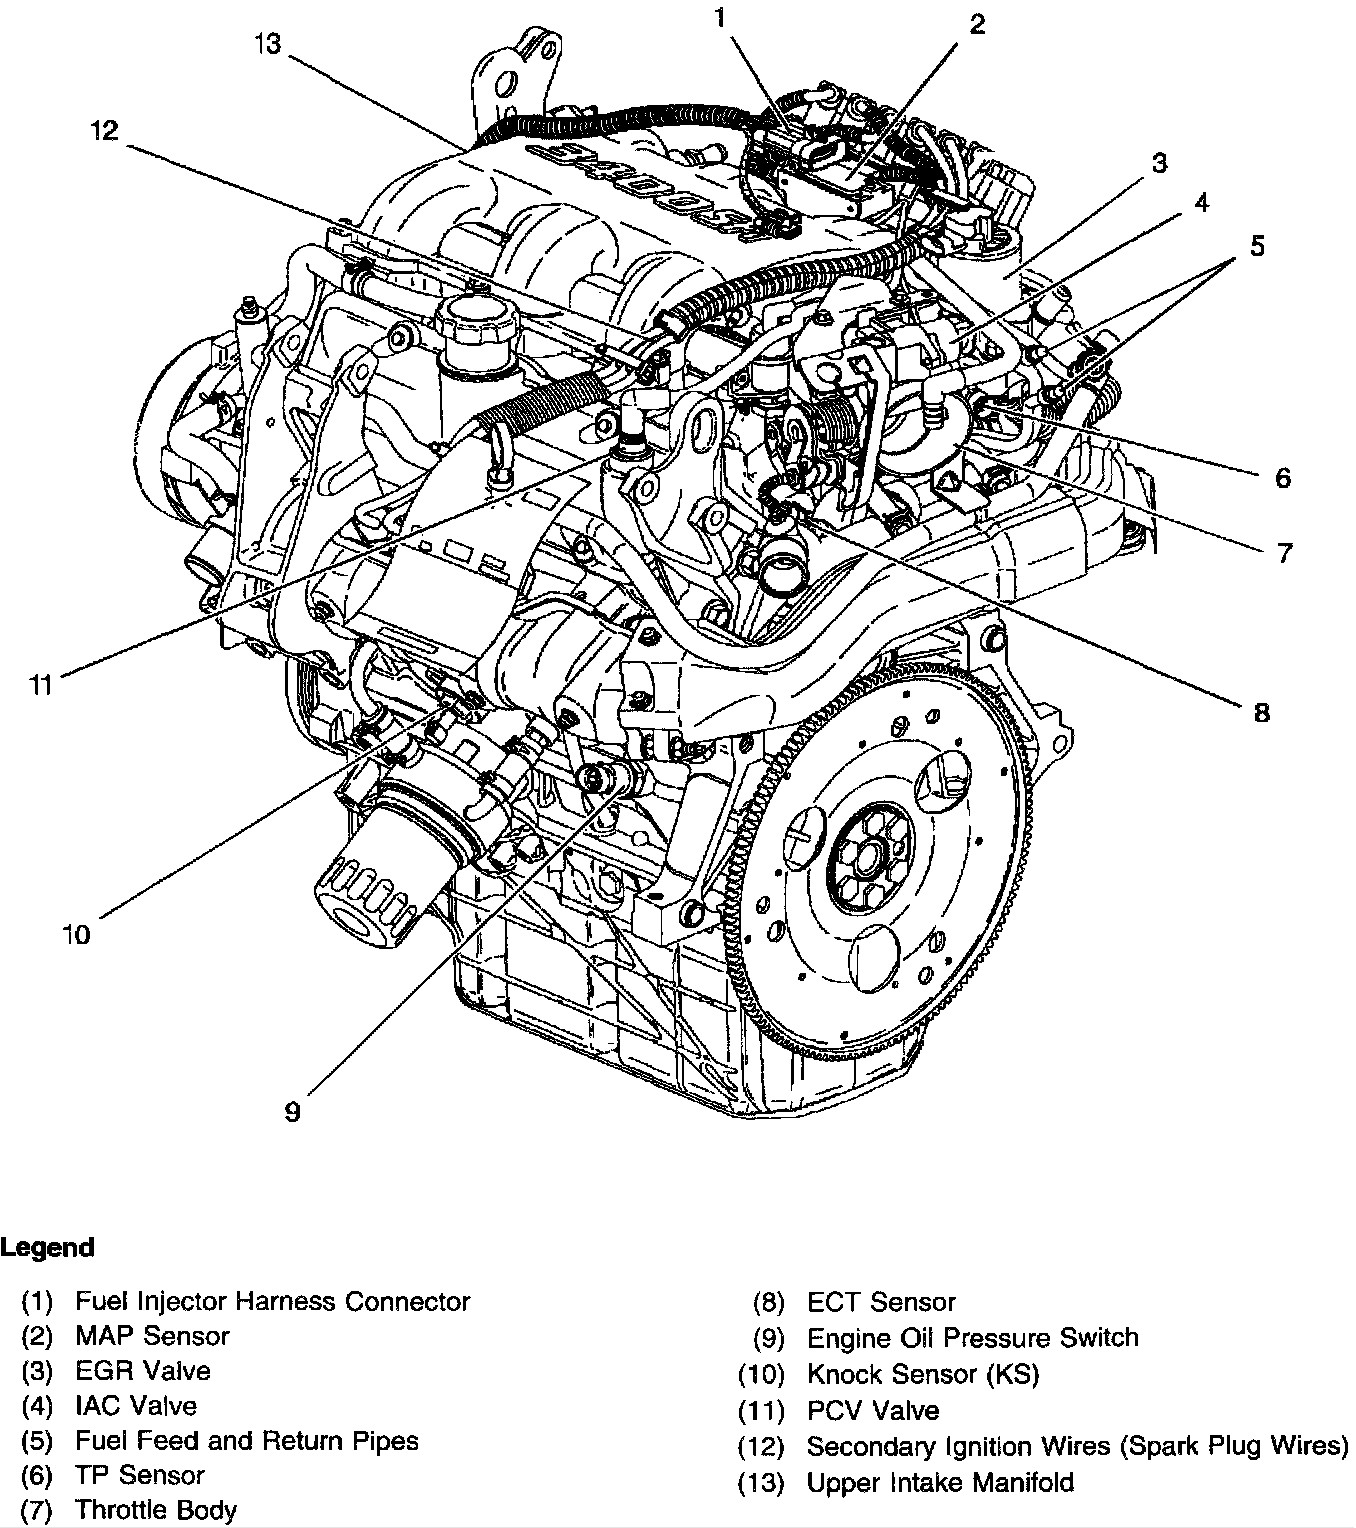 Monte Carlo 3 4l Gm V6 Engine Diagram Guide And Troubleshooting Of Wiring Library Rh 44 Skriptoase De Buick 3800